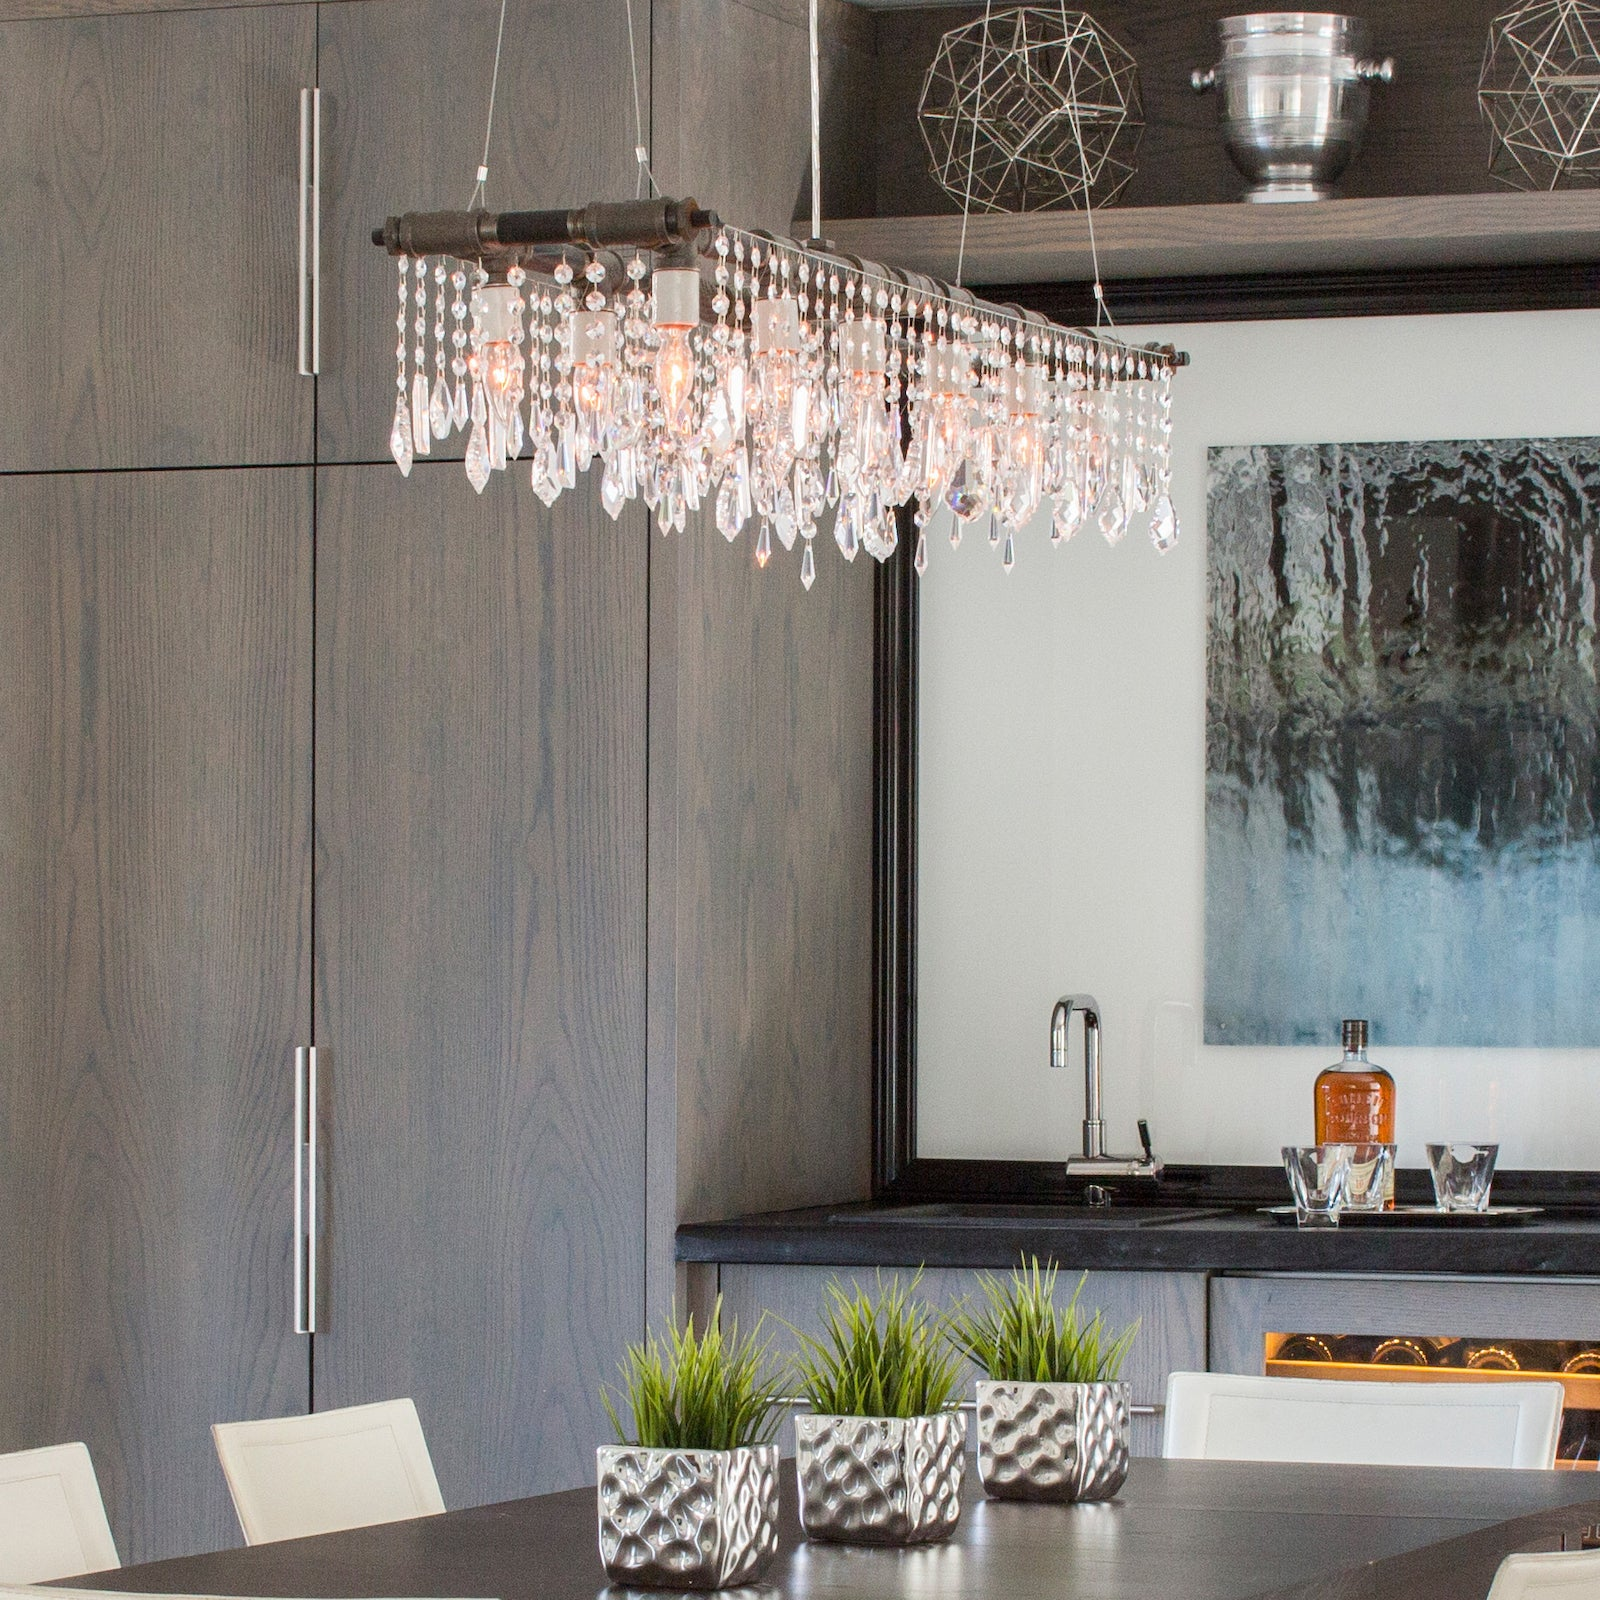 The Industrial Banqueting Chandelier Linear Suspension